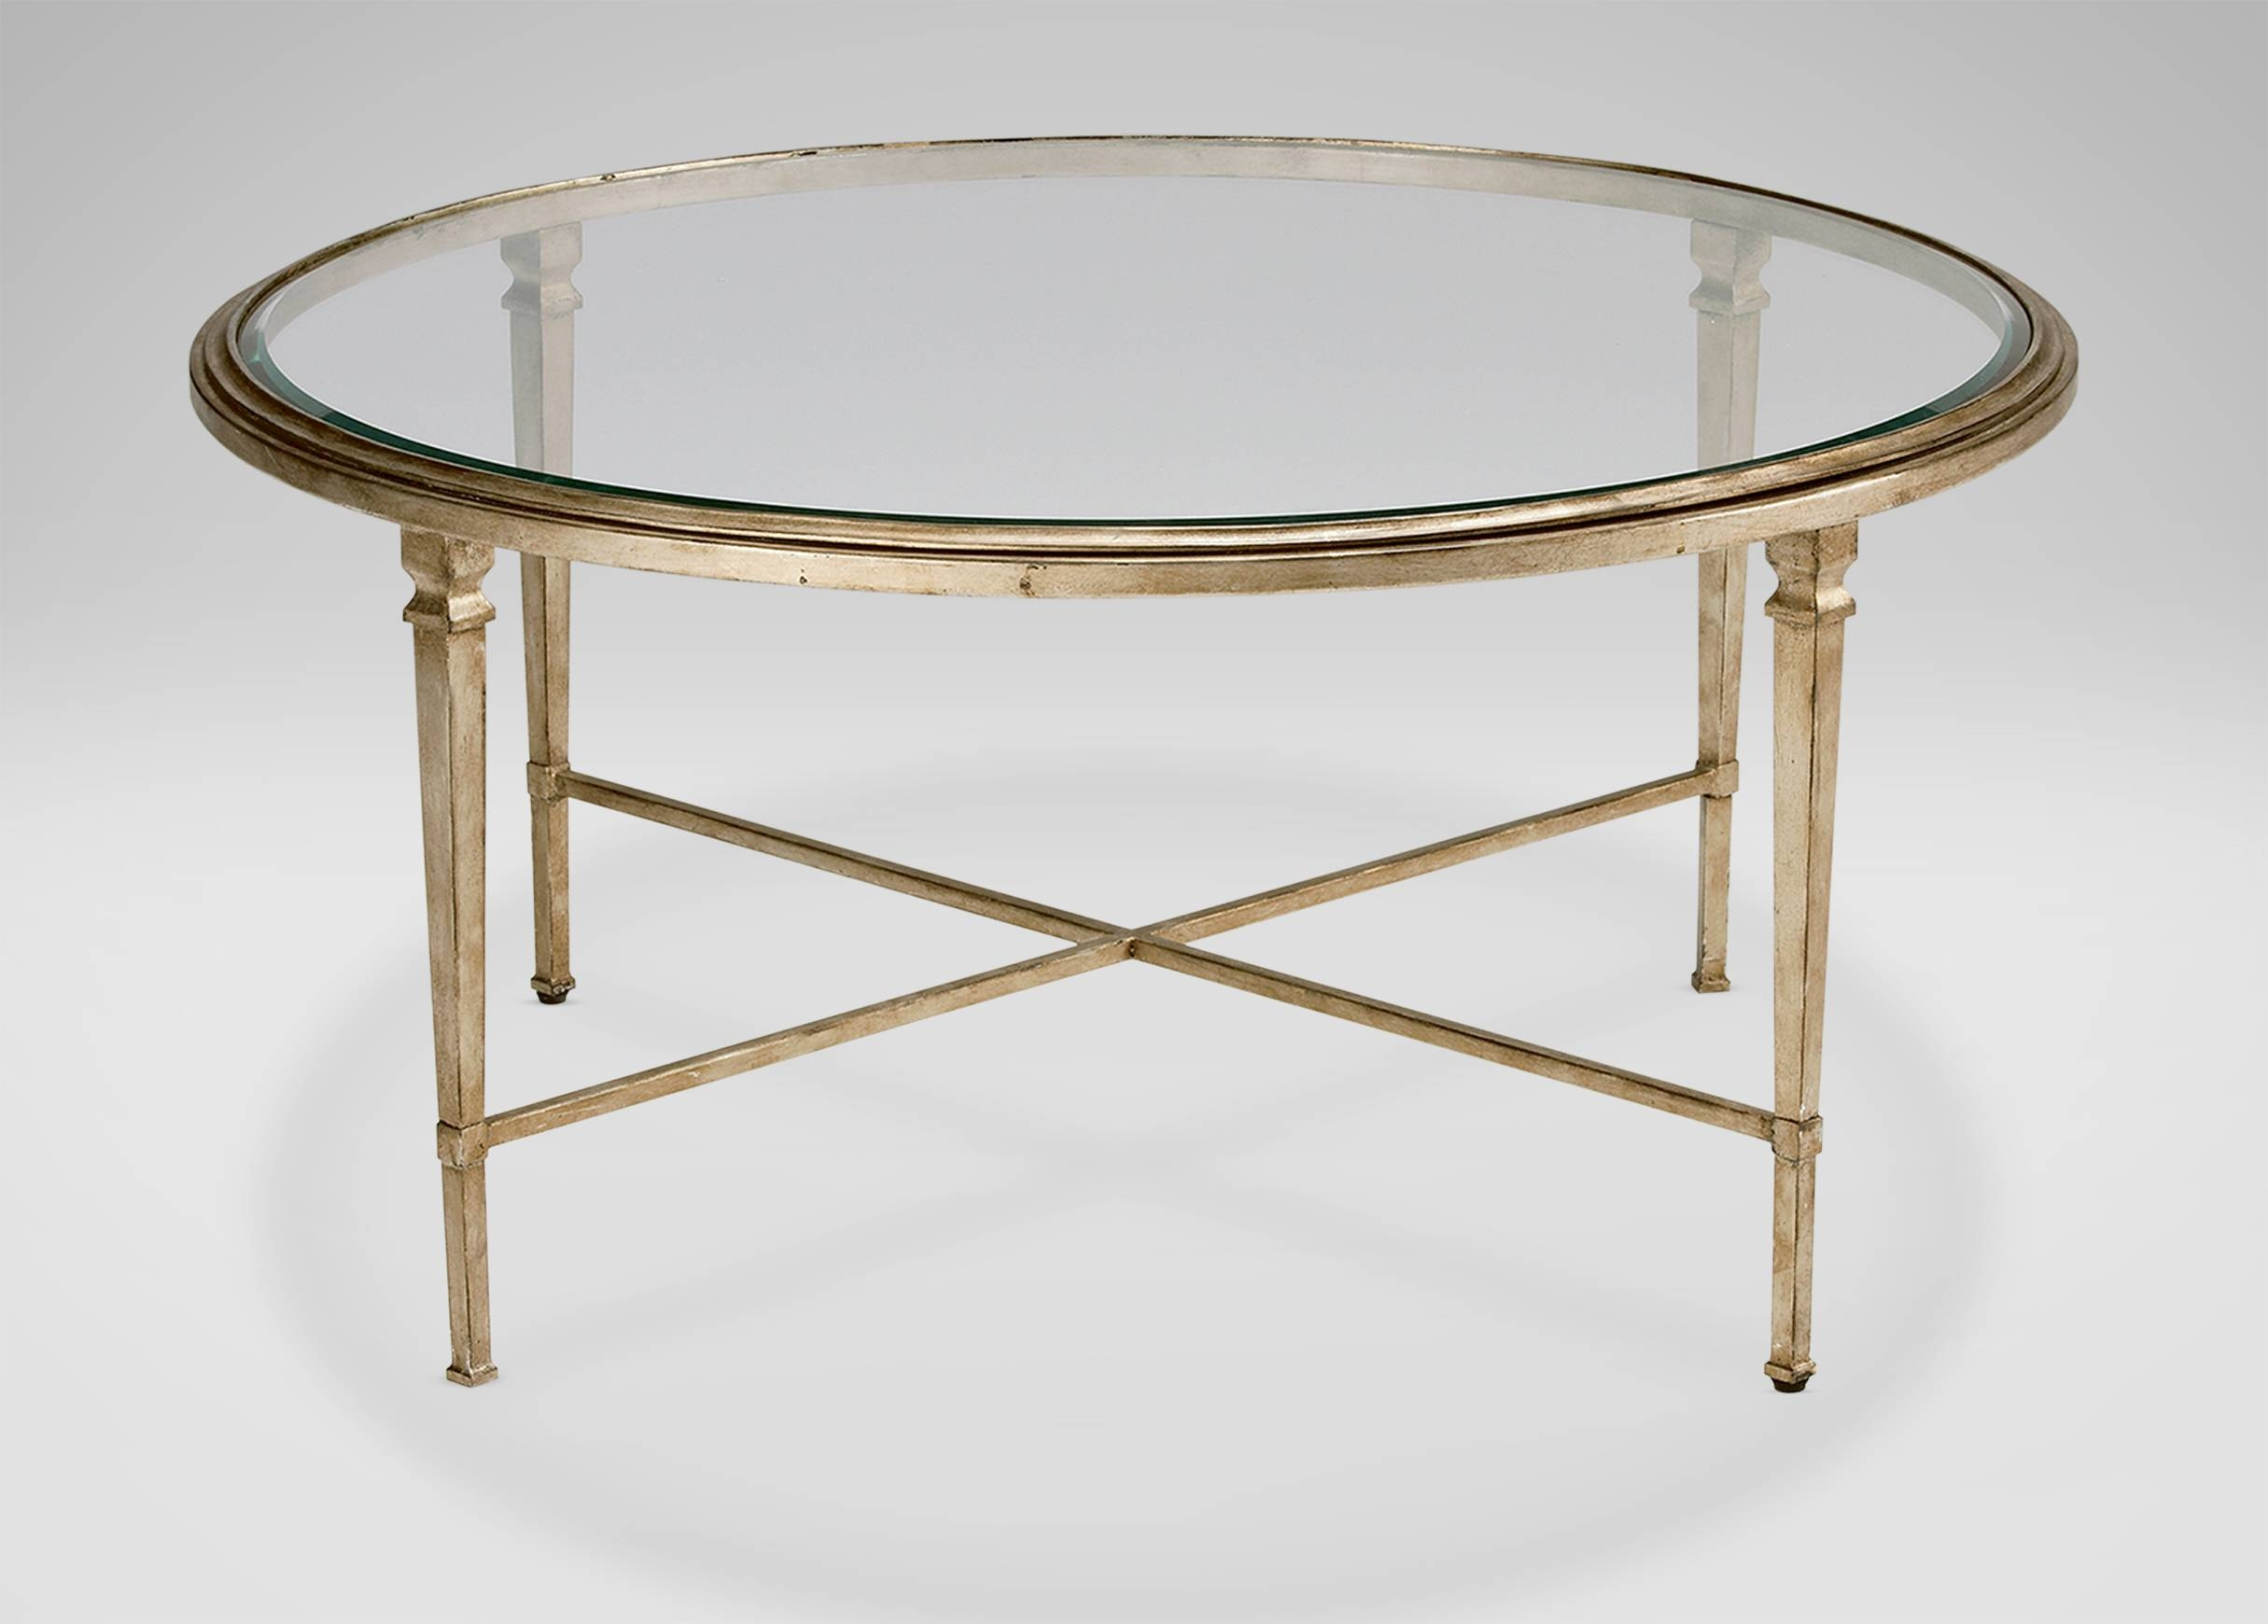 Heron Round Coffee Table | Coffee Tables within Clock Coffee Tables Round Shaped (Image 20 of 30)